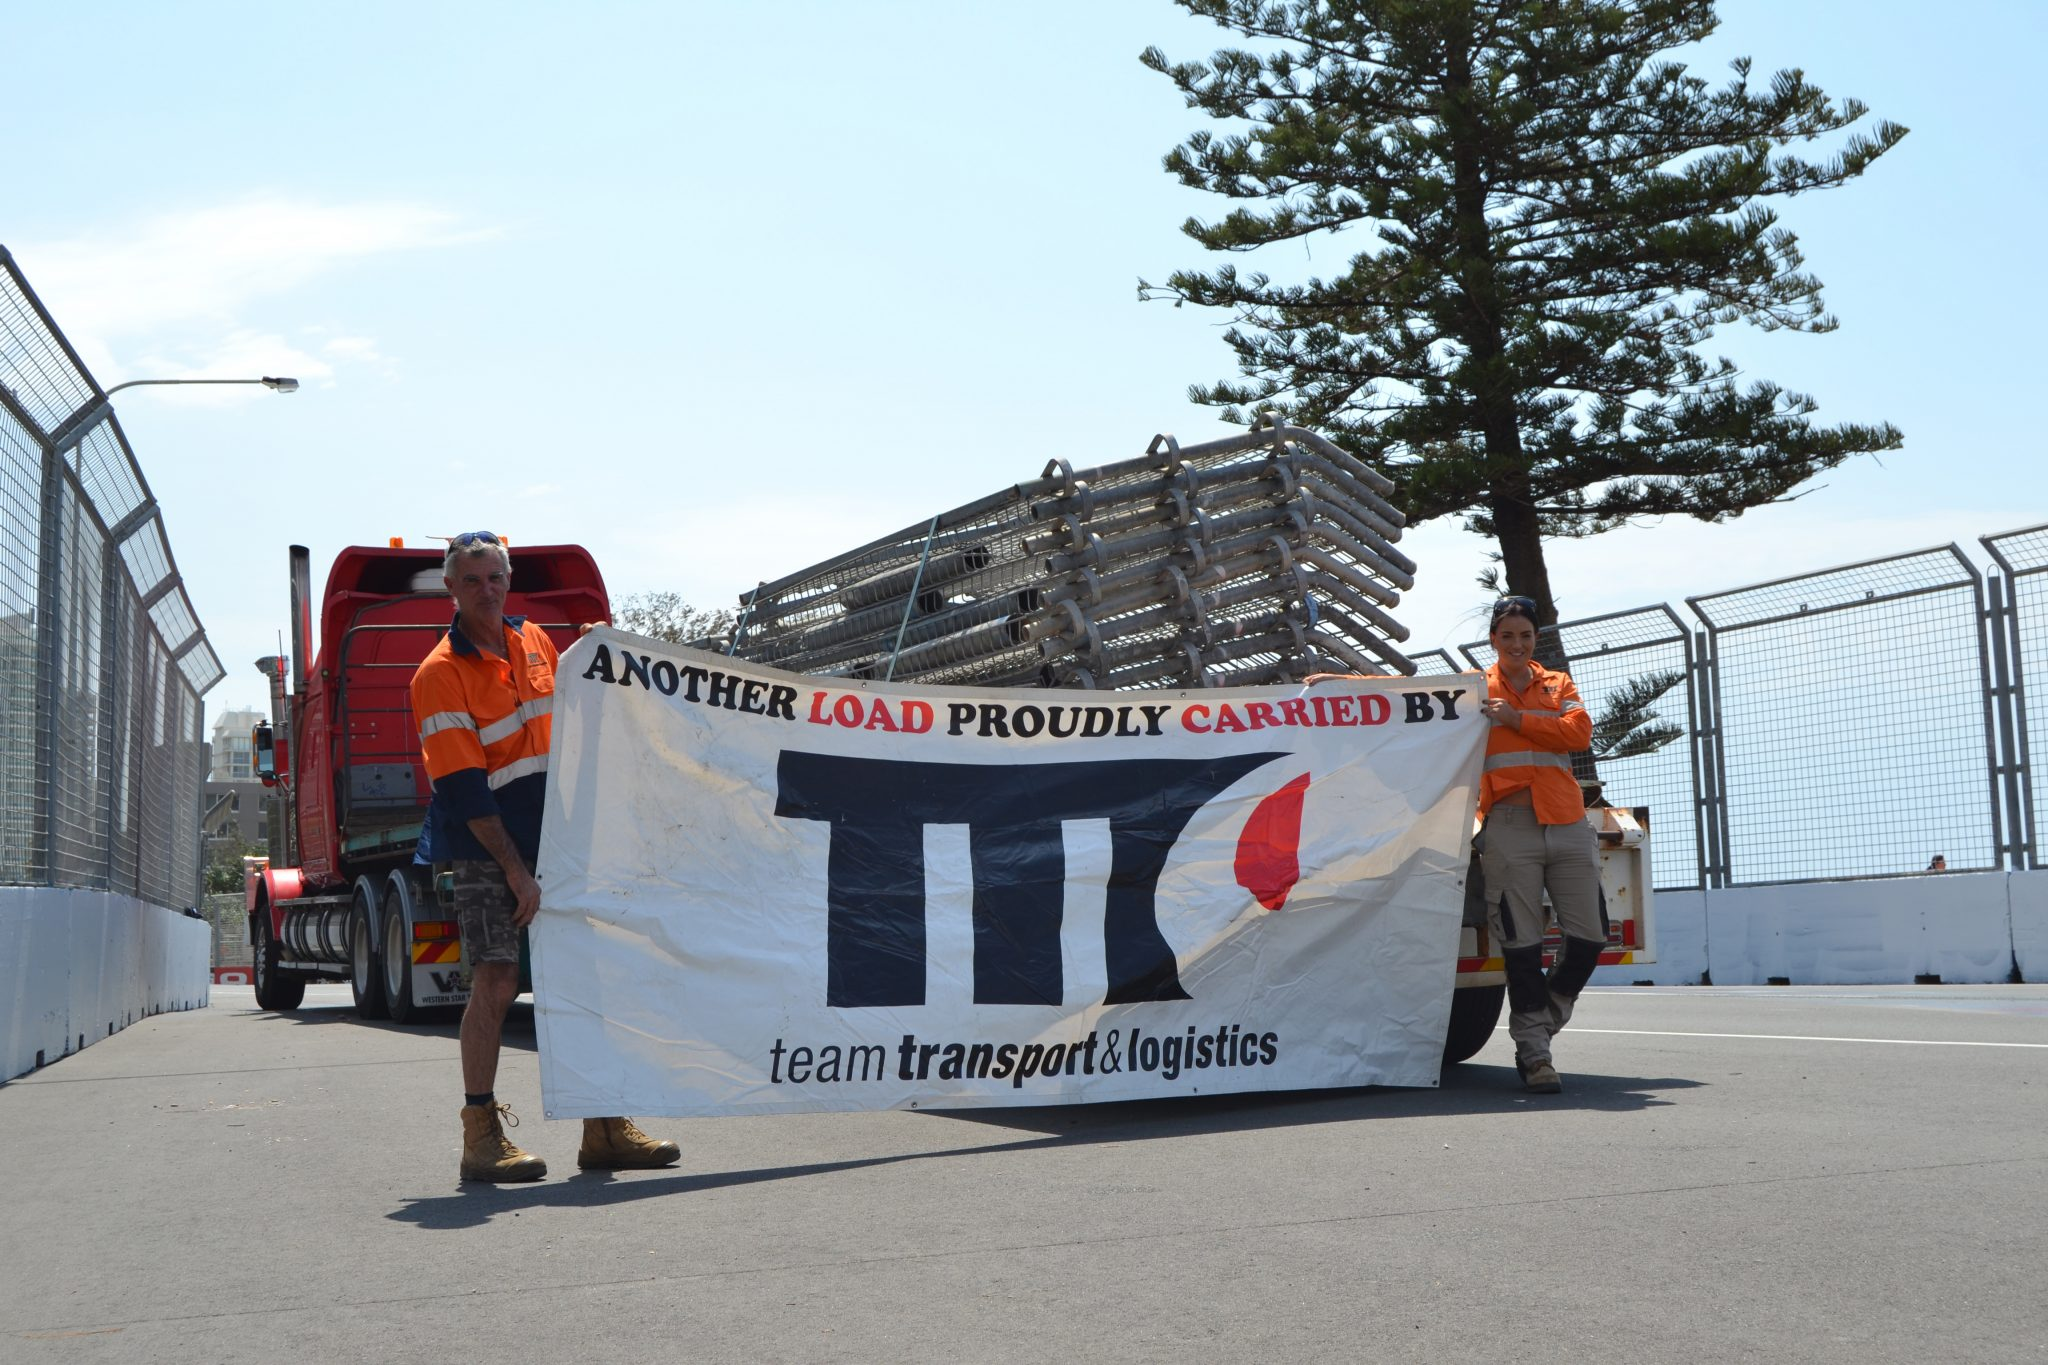 Team transport and logistics staff holding banner on the road